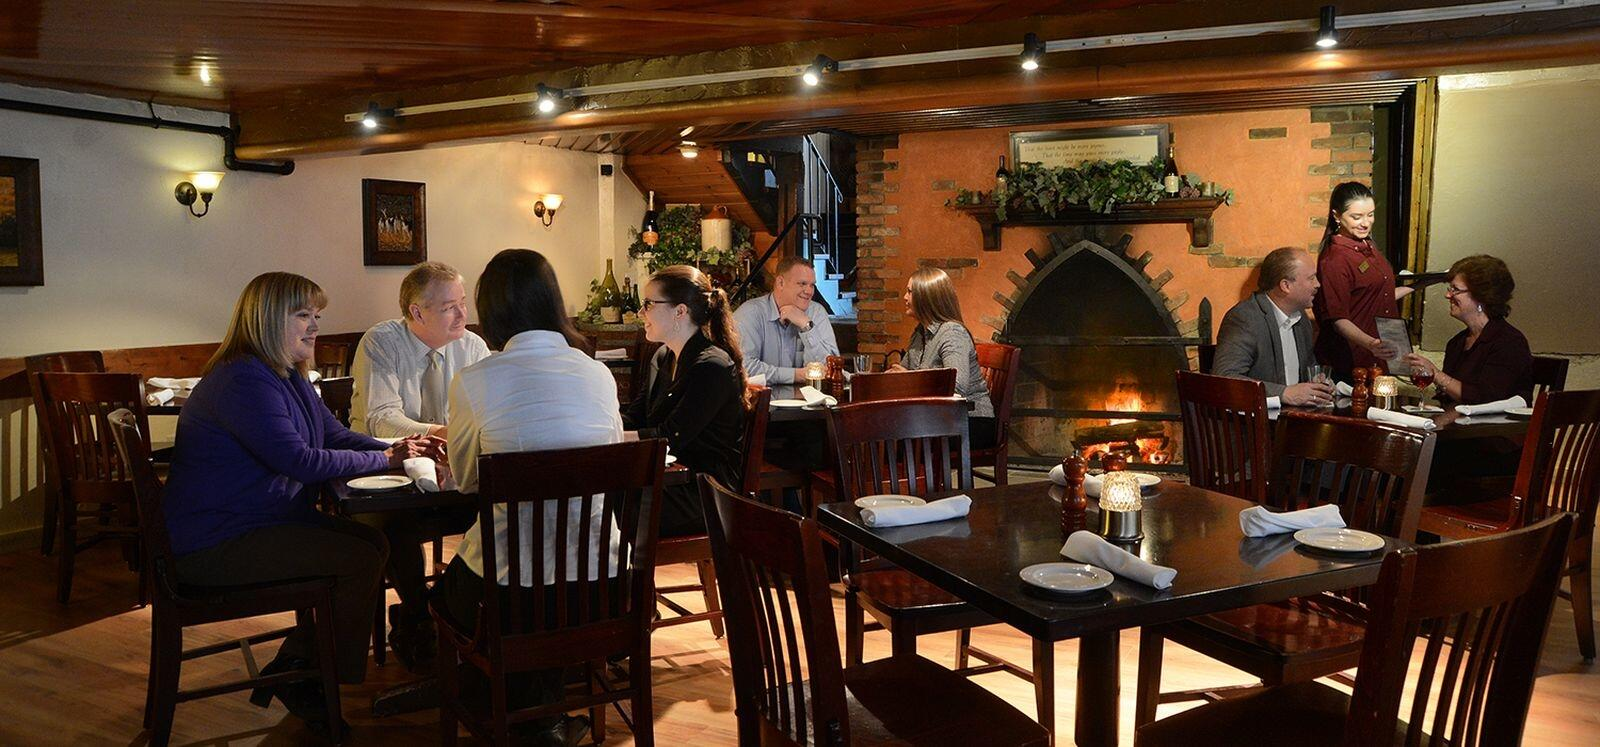 Tables of happy guests eating beside a fireplace